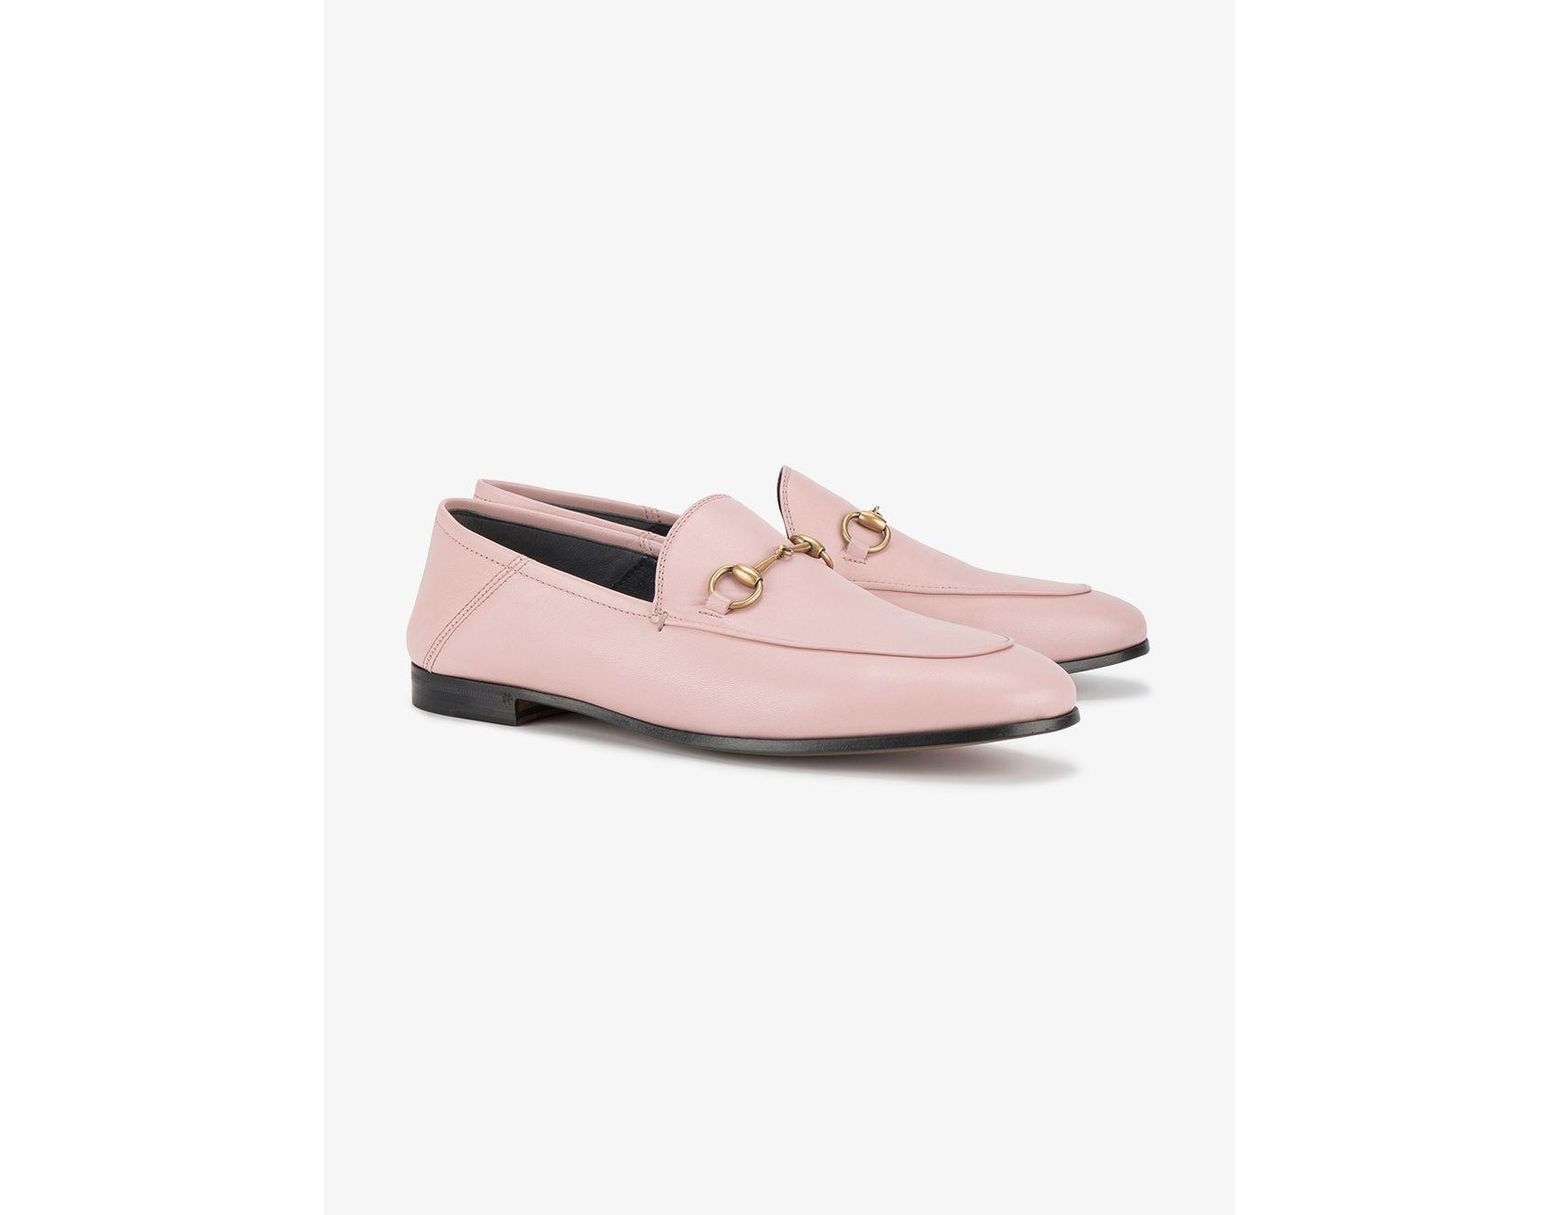 0543b6b4a30 Lyst - Gucci Pink Brixton Leather Loafers in Pink